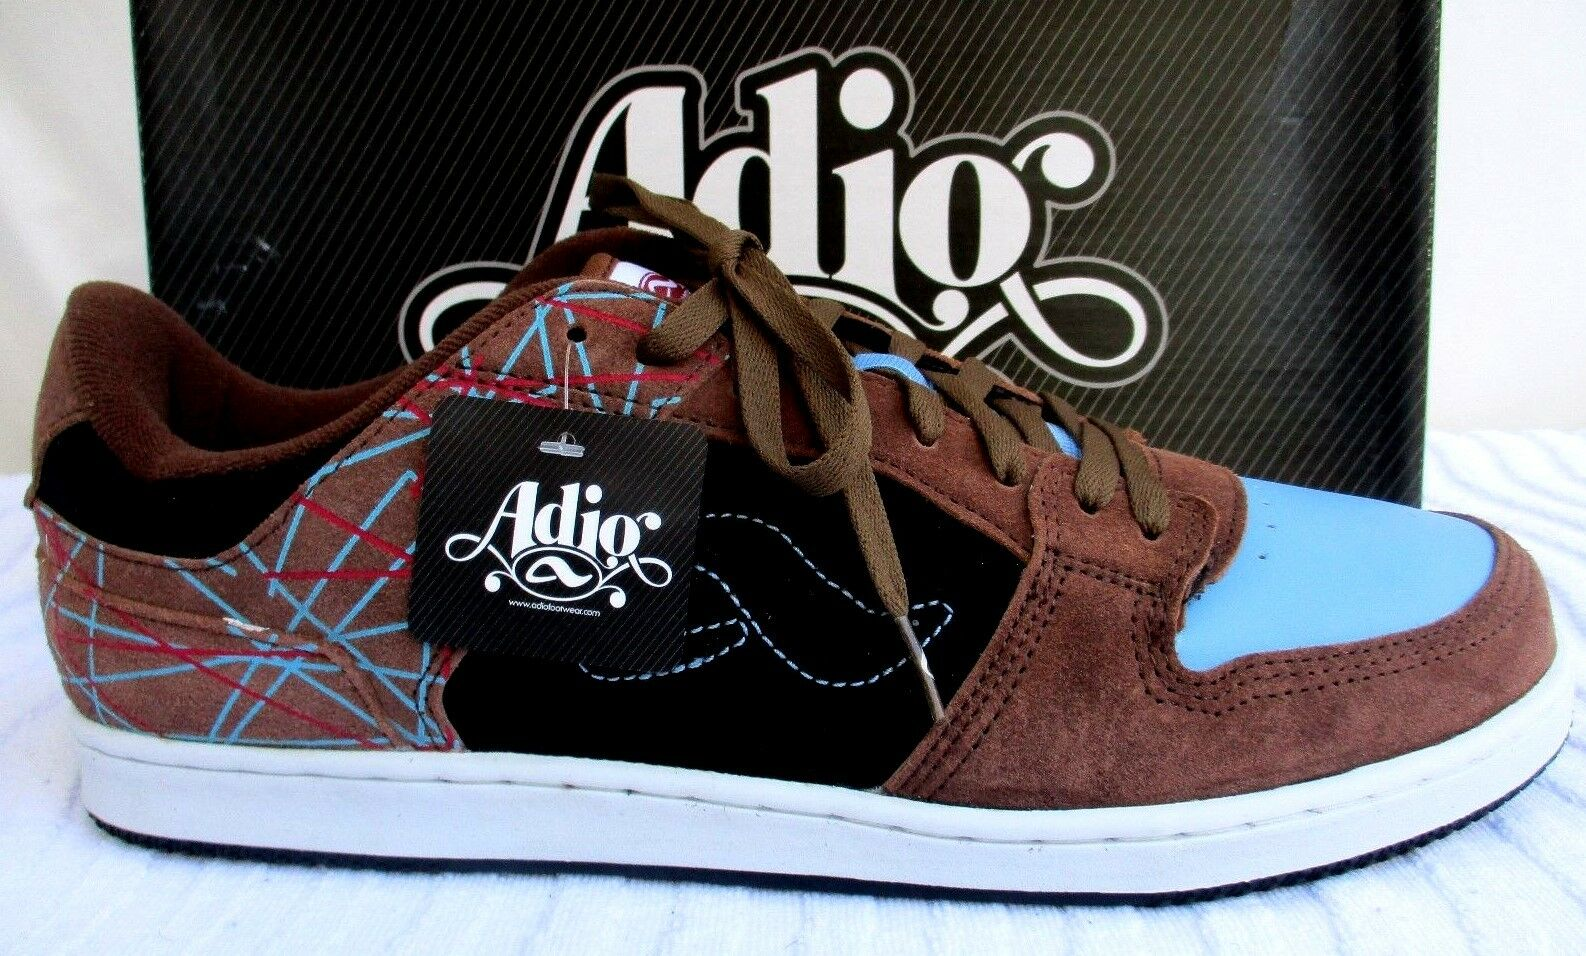 ADIO..MONROE..SUEDE LEATHER..SKATE BOARD..SHOES..NEW in BOX..sz 14